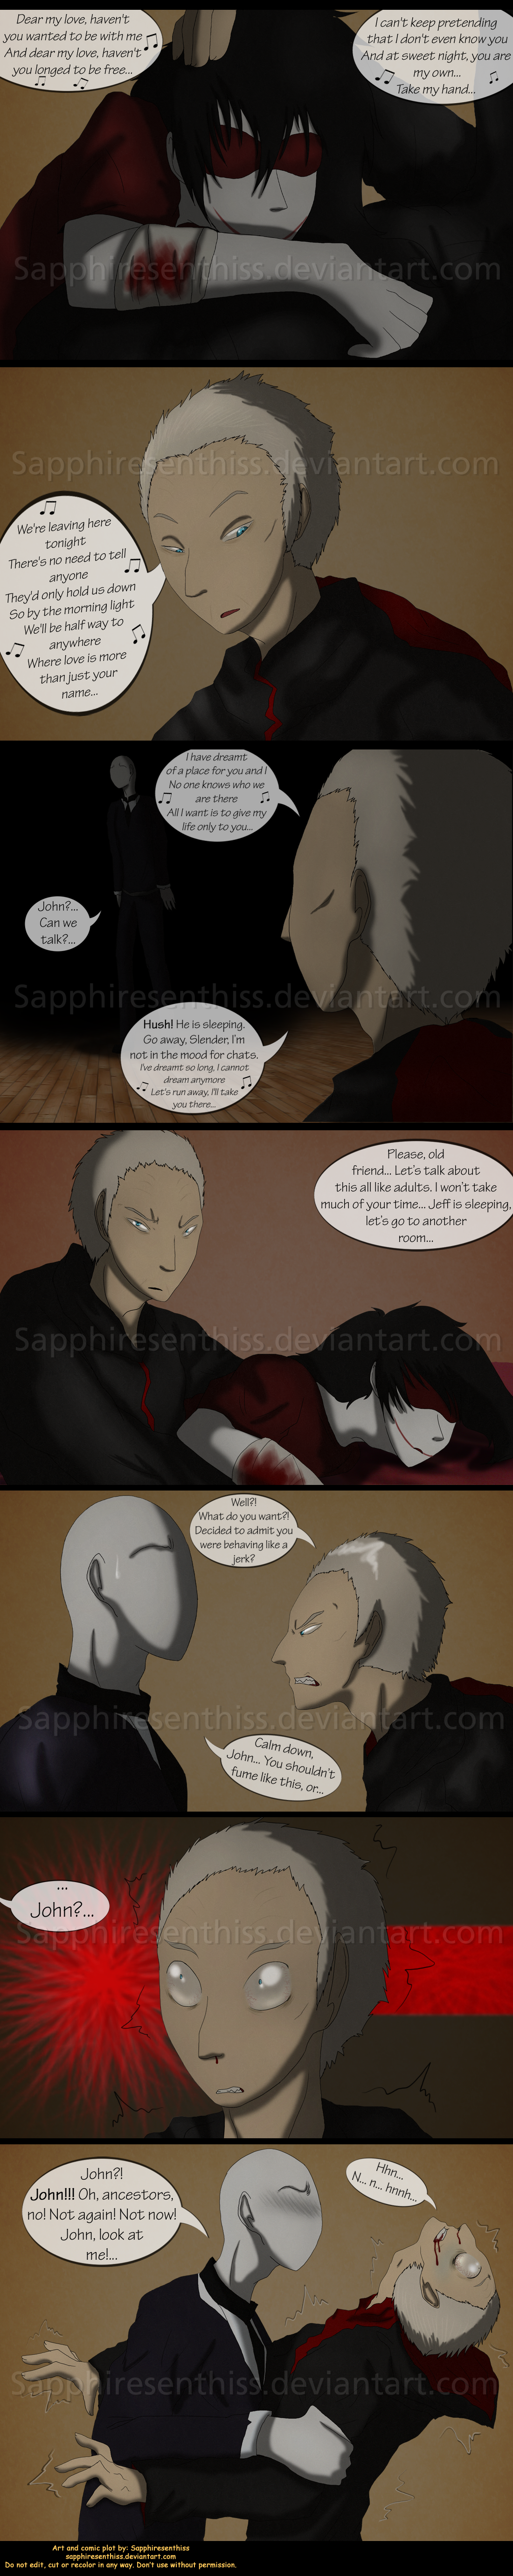 adventures with jeff the killer page 159 by